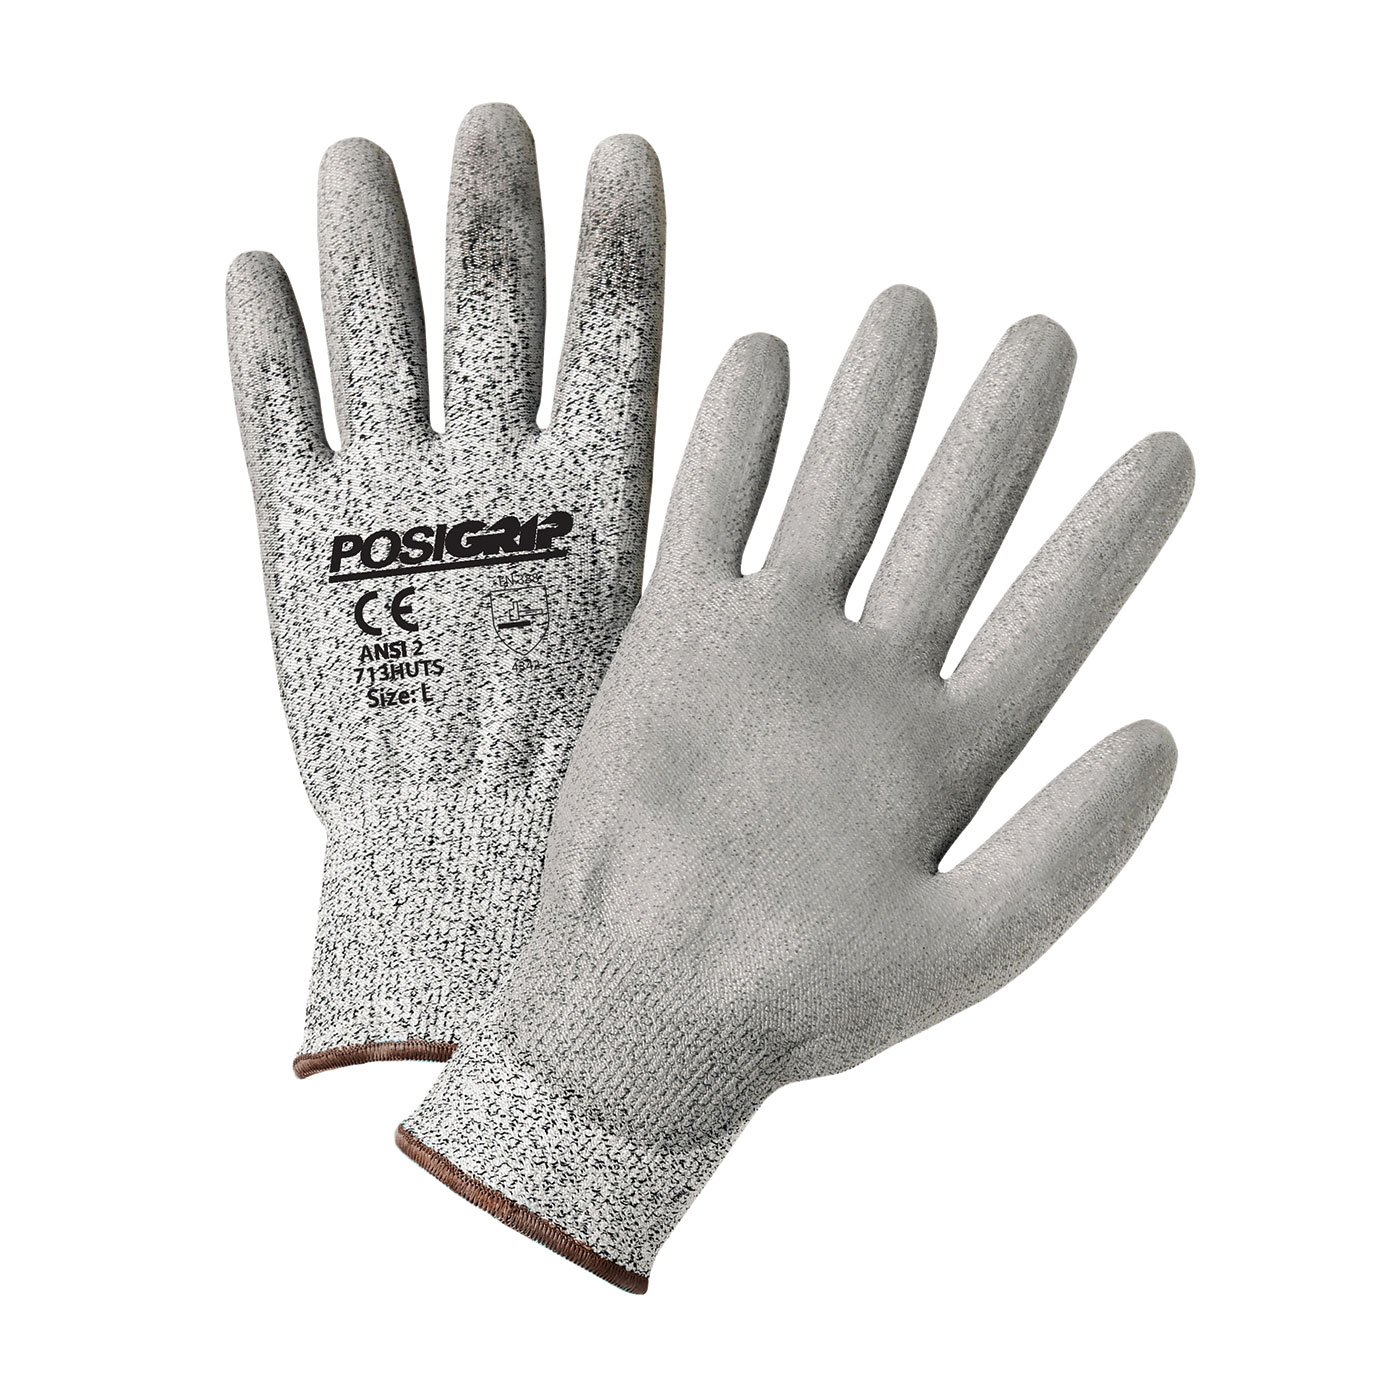 Seamless Knit PolyKor® Blended Glove with Polyurethane Coated Smooth Grip on Palm & Fingers - Touchscreen Compatible, Salt & Pepper, 2XL